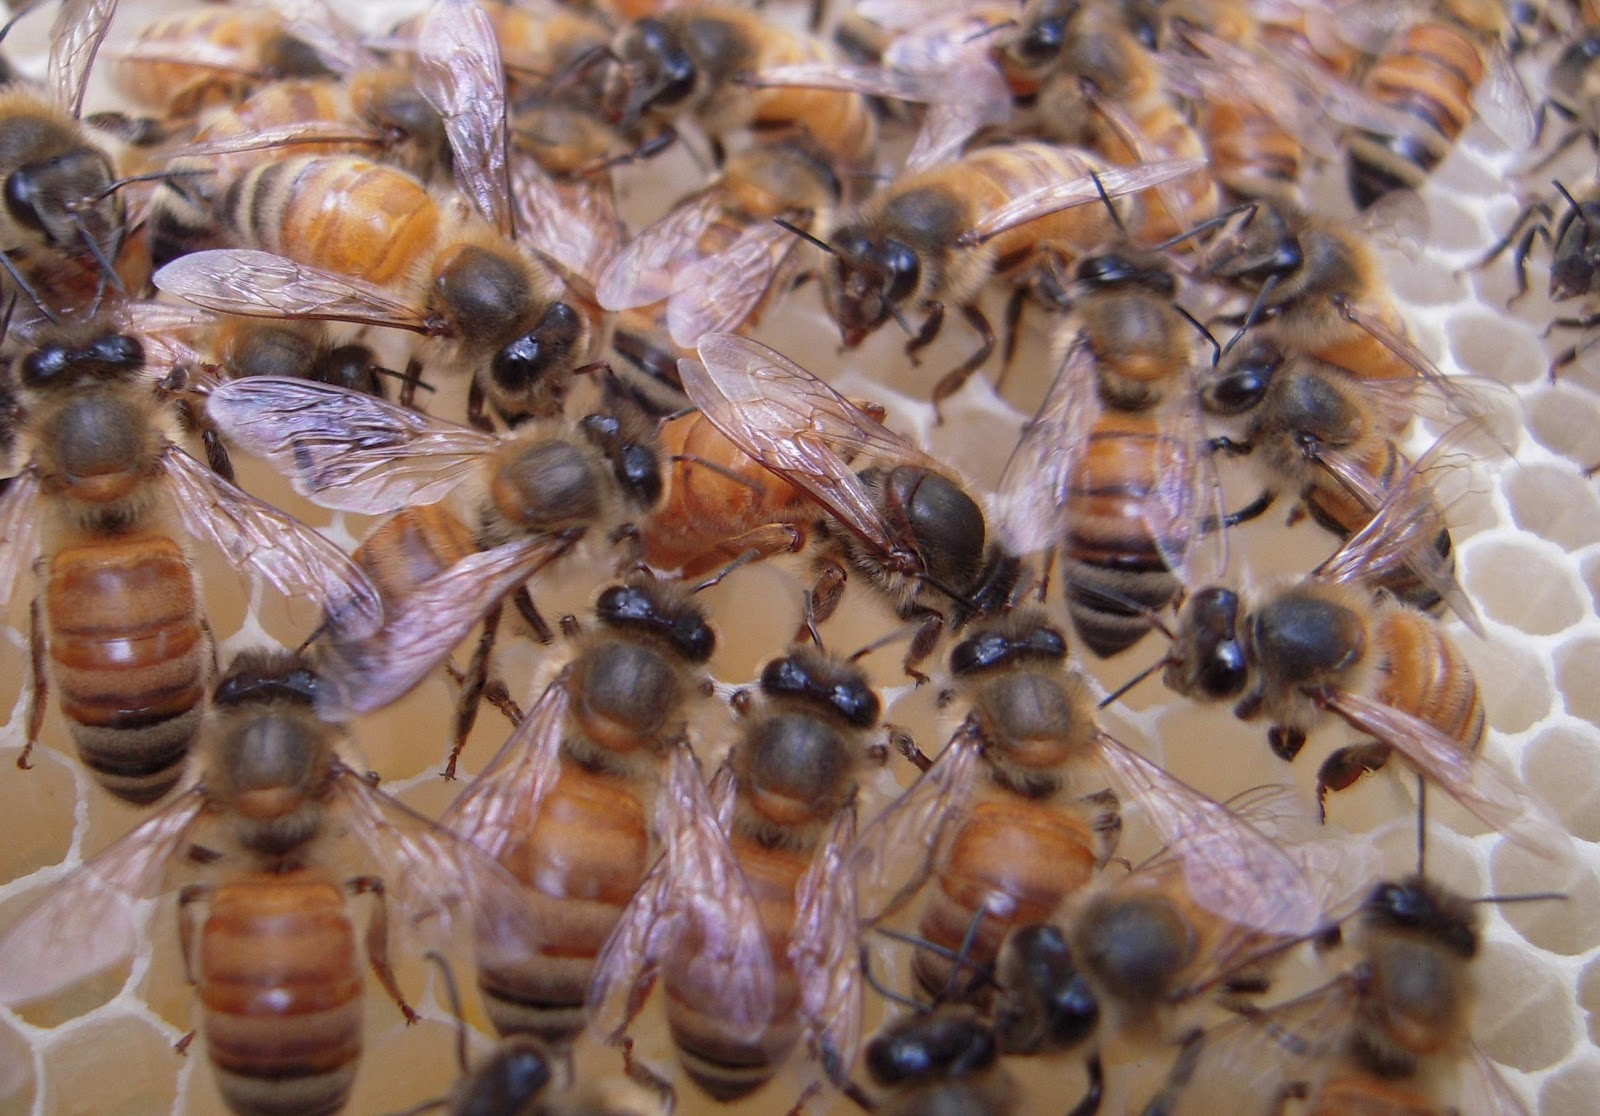 queen bee laying eggs - photo #20